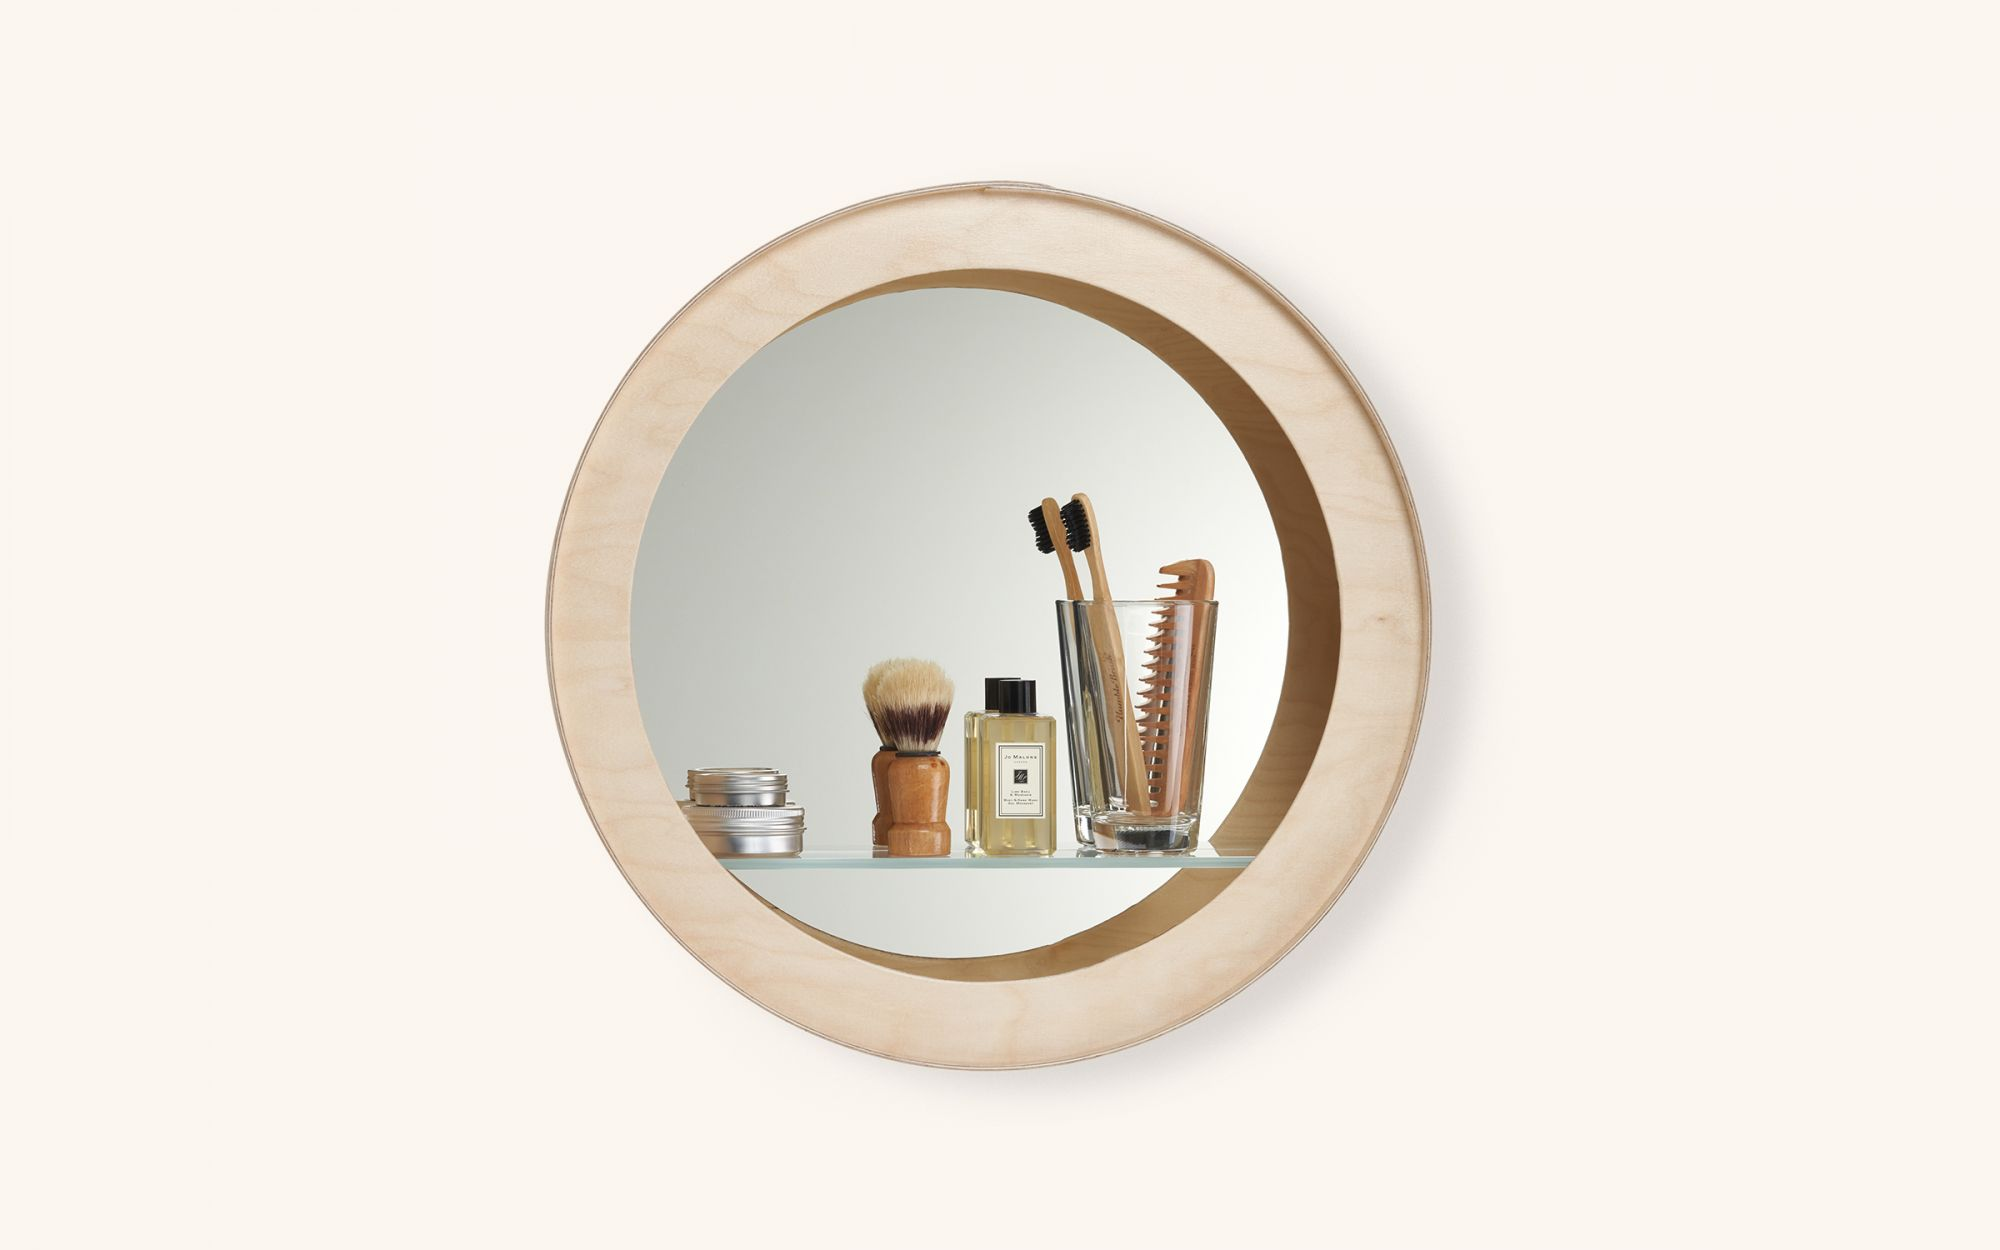 Aski shelf mirror - birch mood